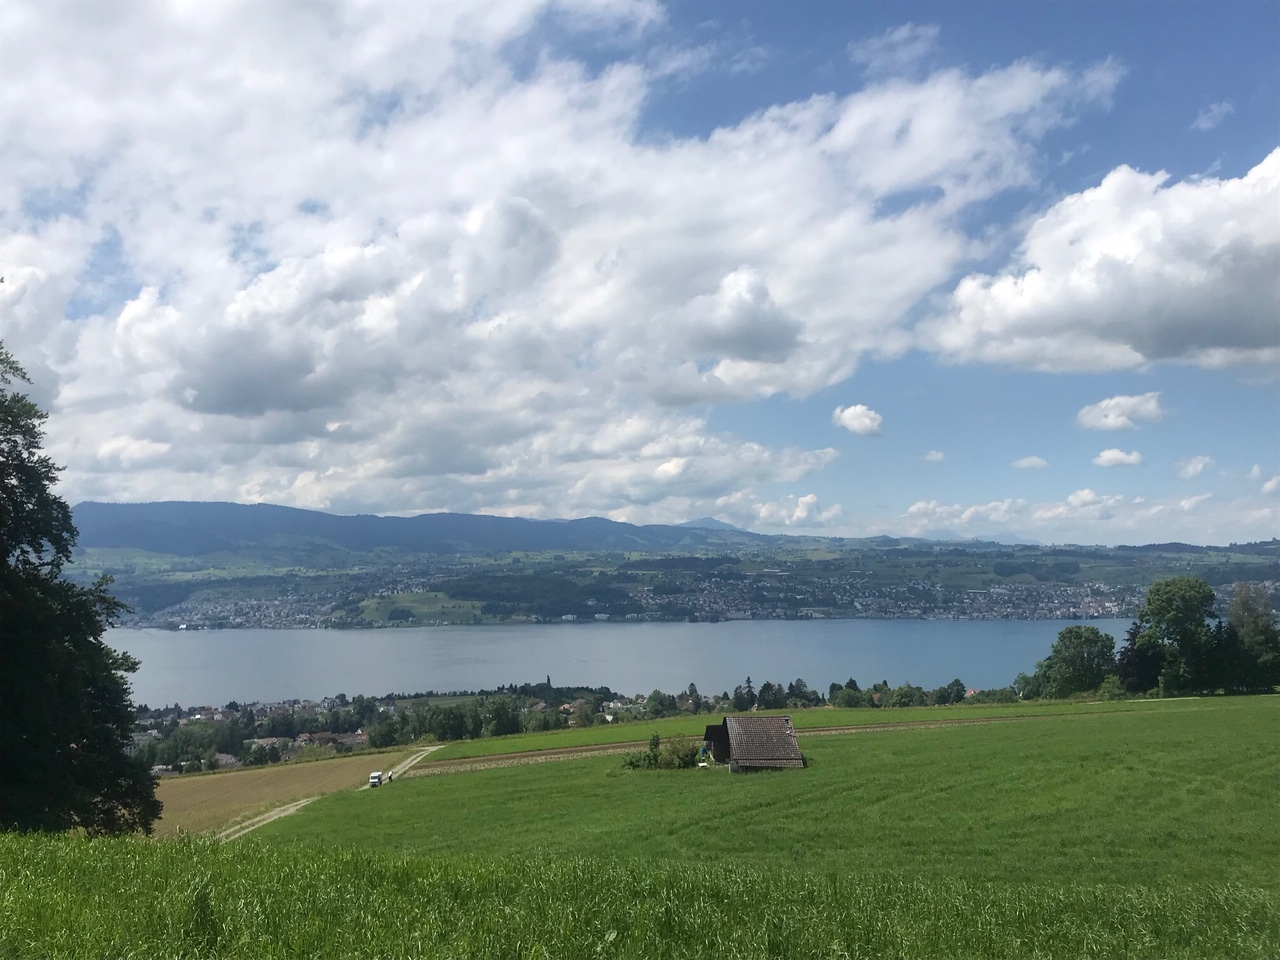 6/13 - Long hike from Zurich to Rapperswil